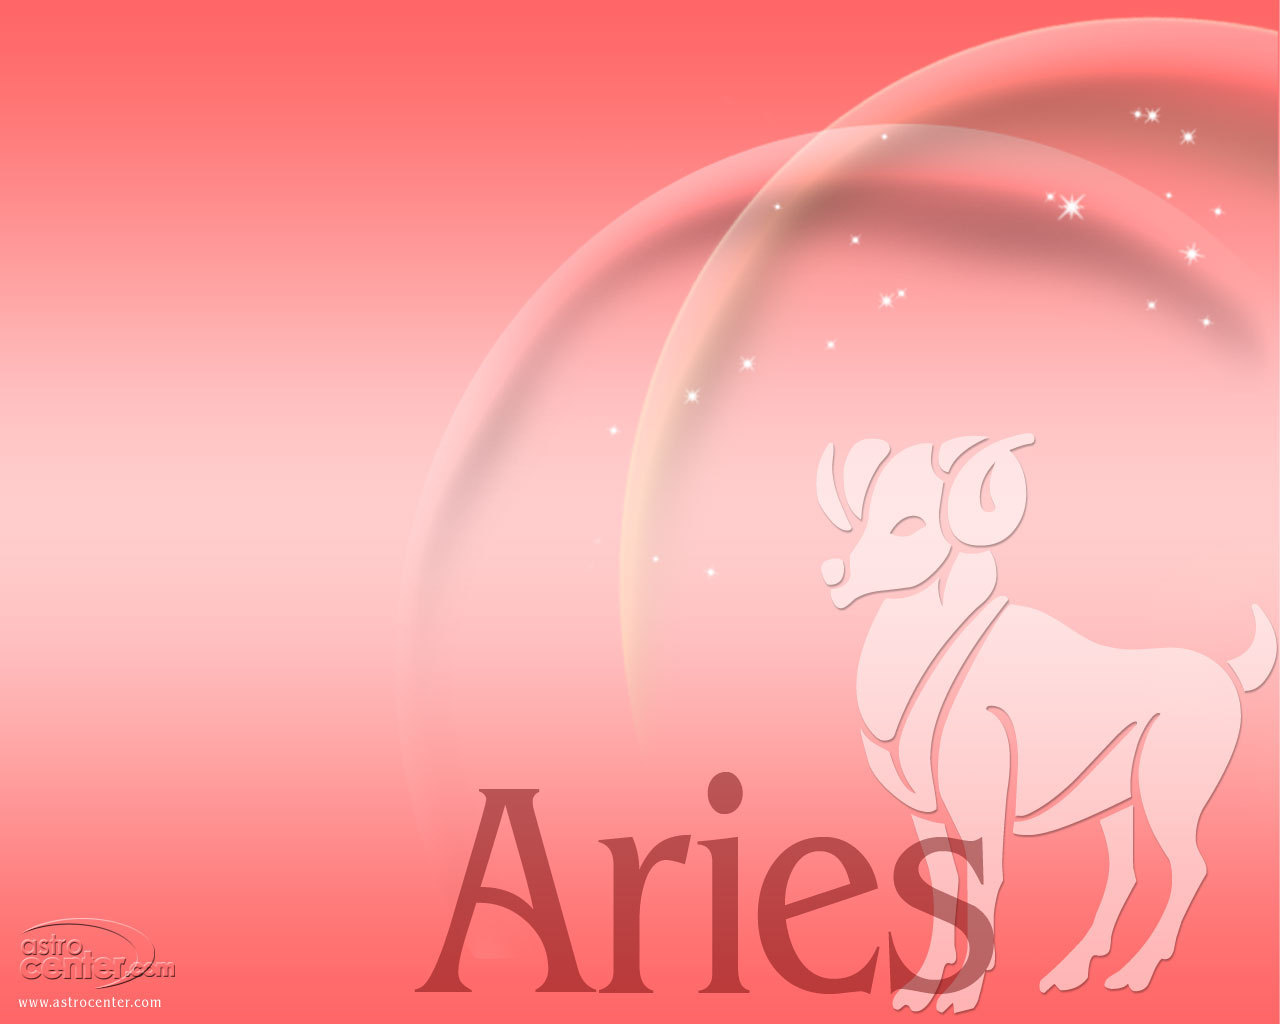 Fondos-HD-de-Aries-Fondosdepantalla.top (5)